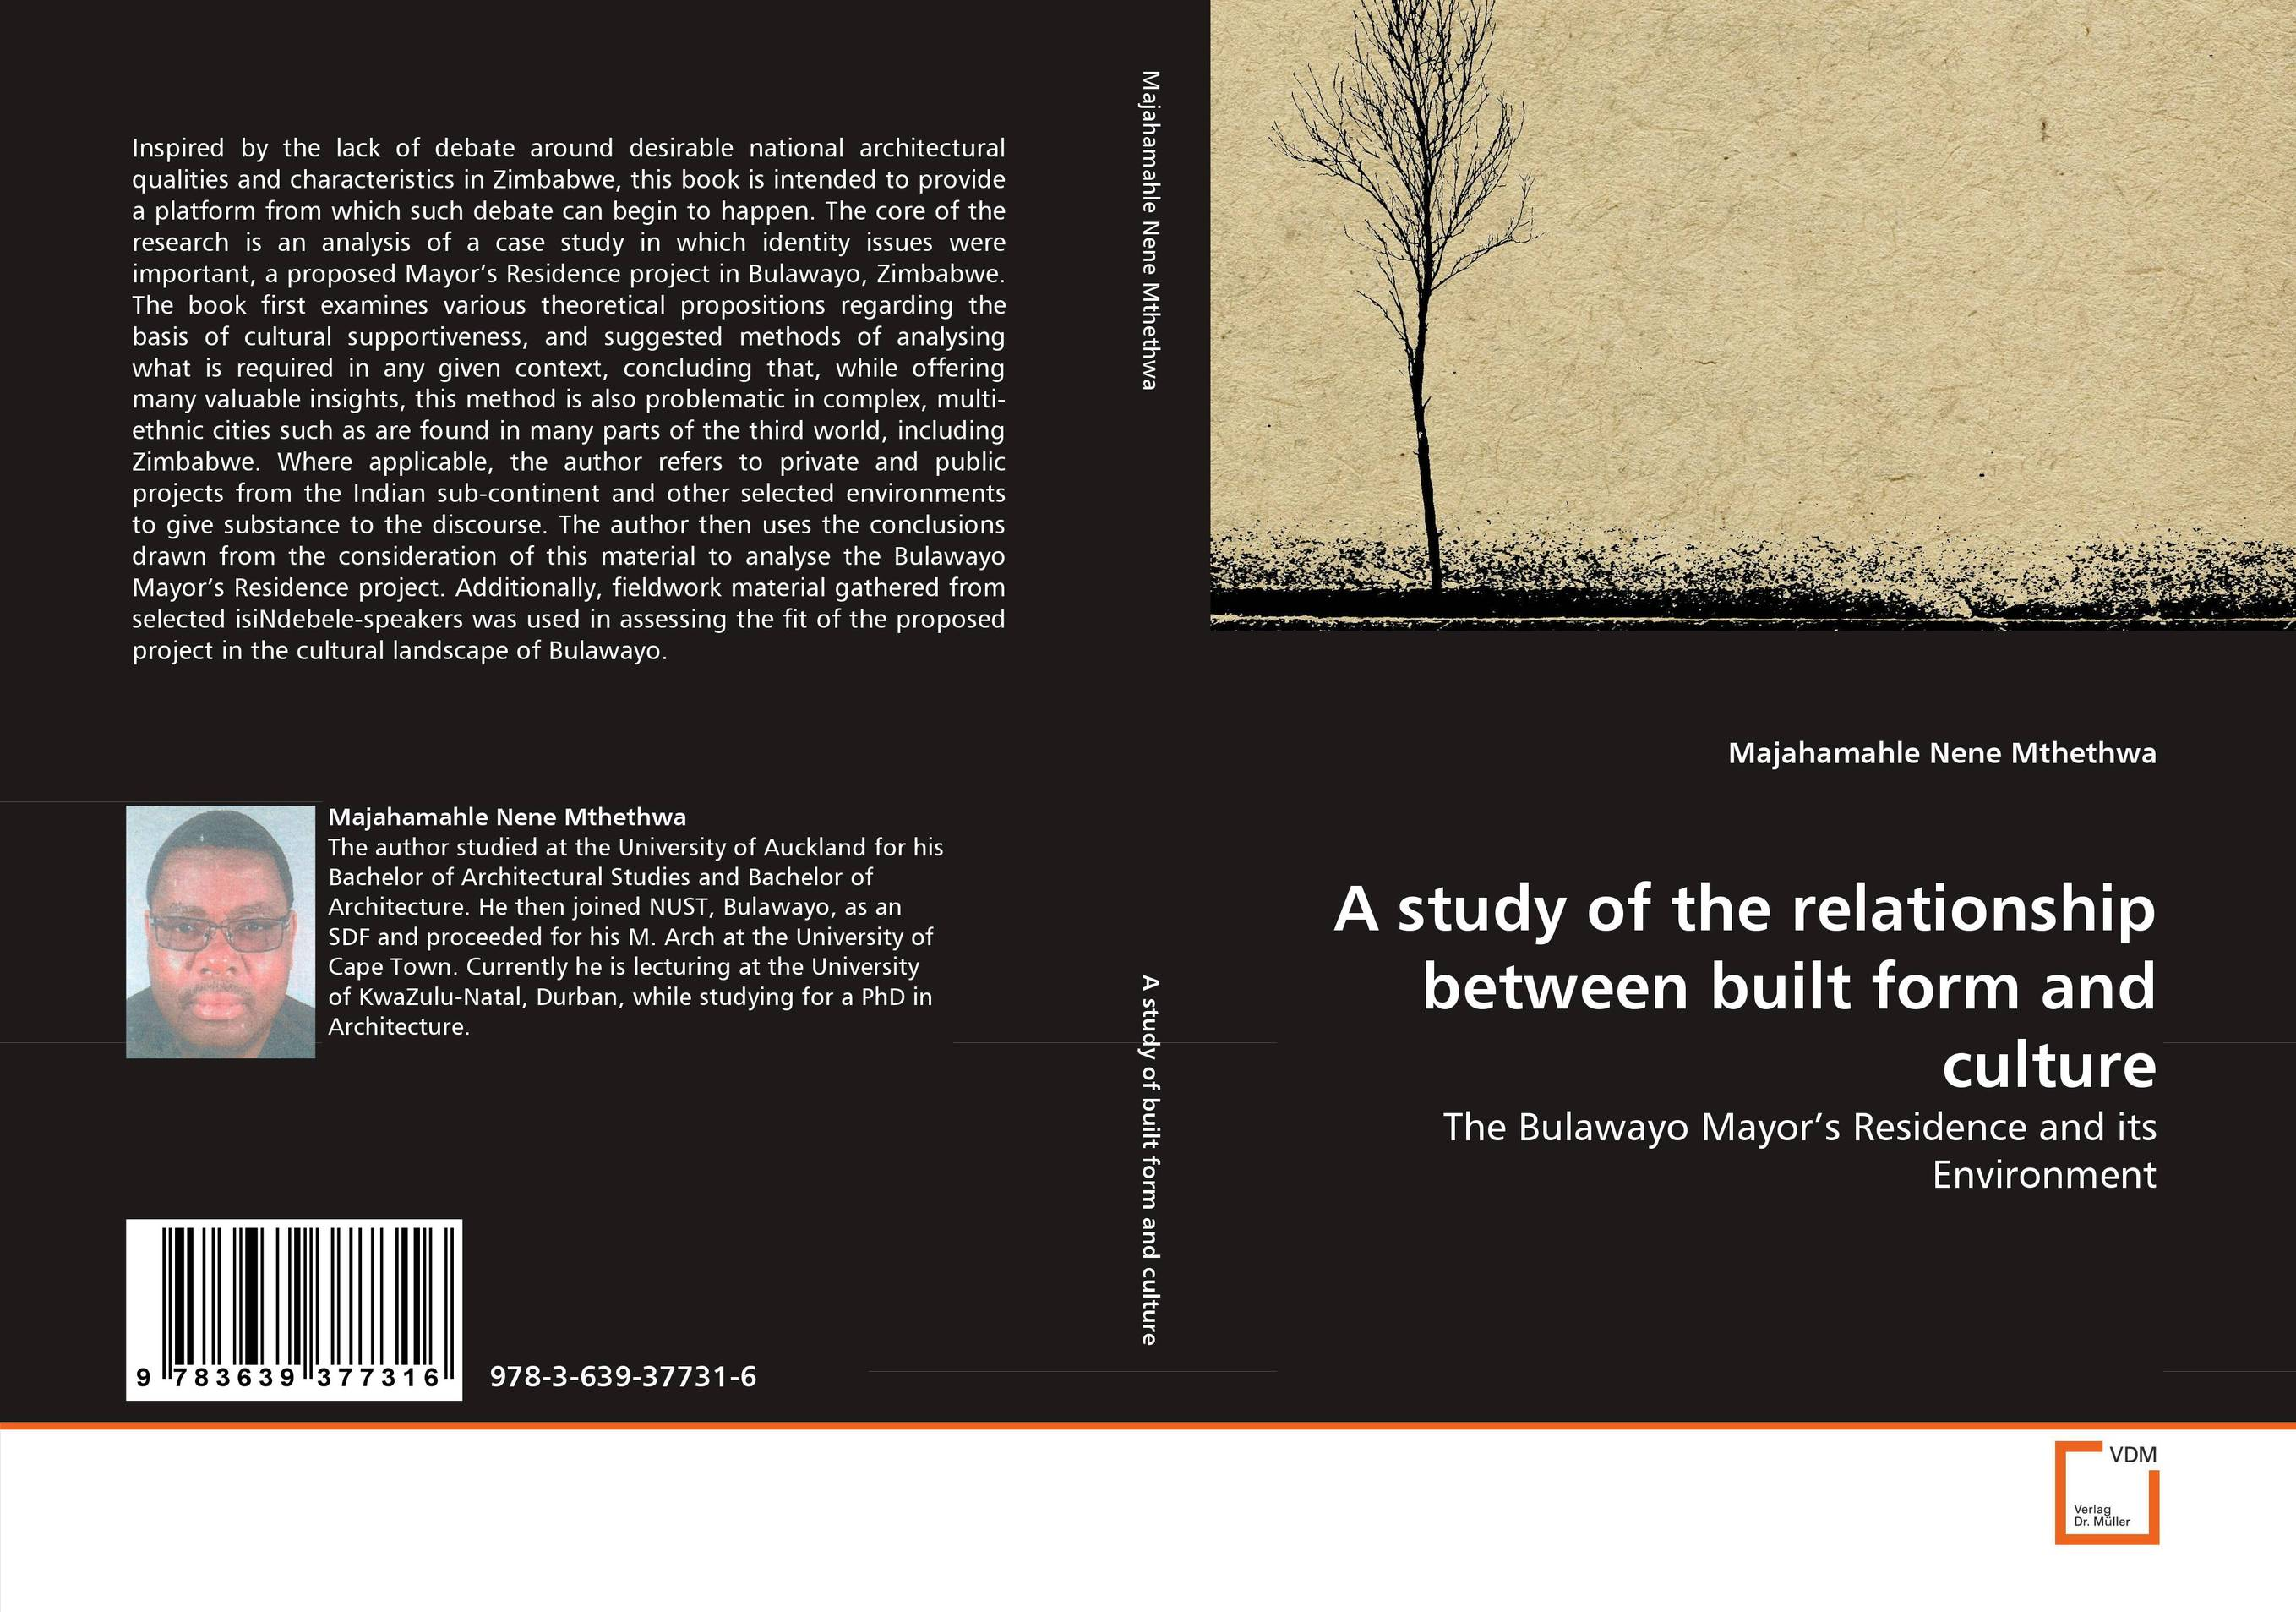 A study of the relationship between built form and culture a study of the religio political thought of abdurrahman wahid